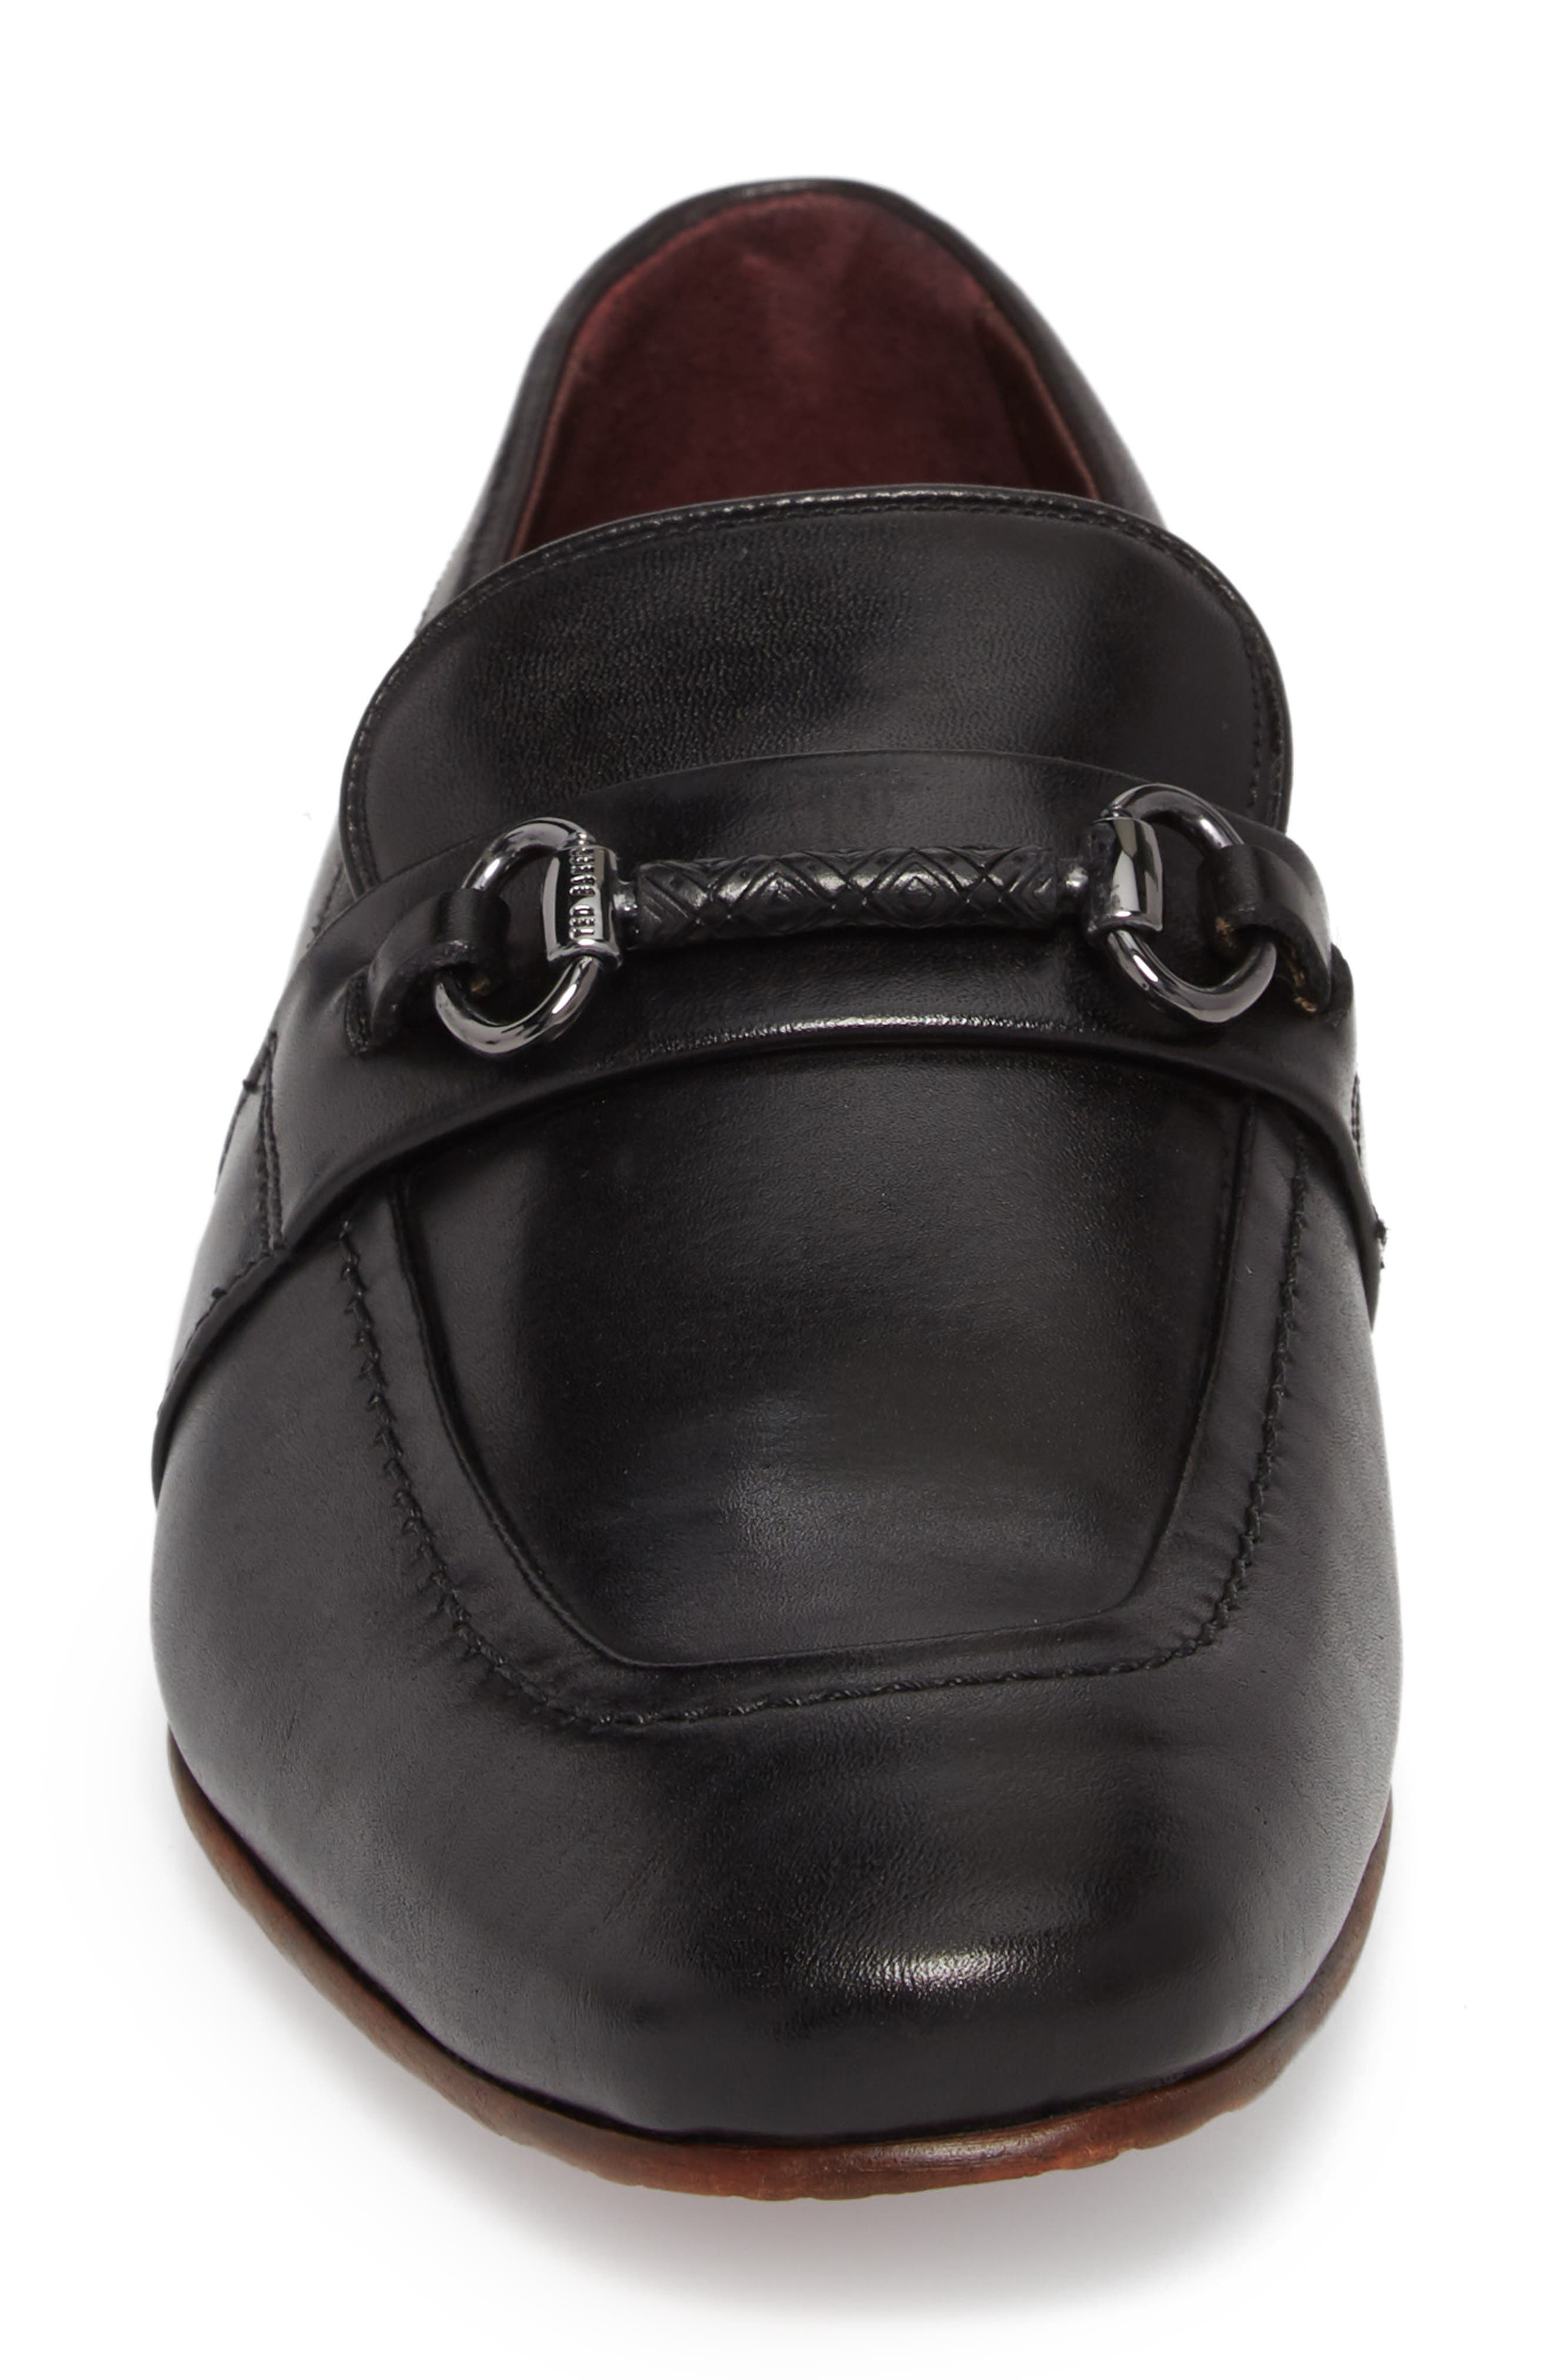 Daiser Bit Loafer,                             Alternate thumbnail 4, color,                             001